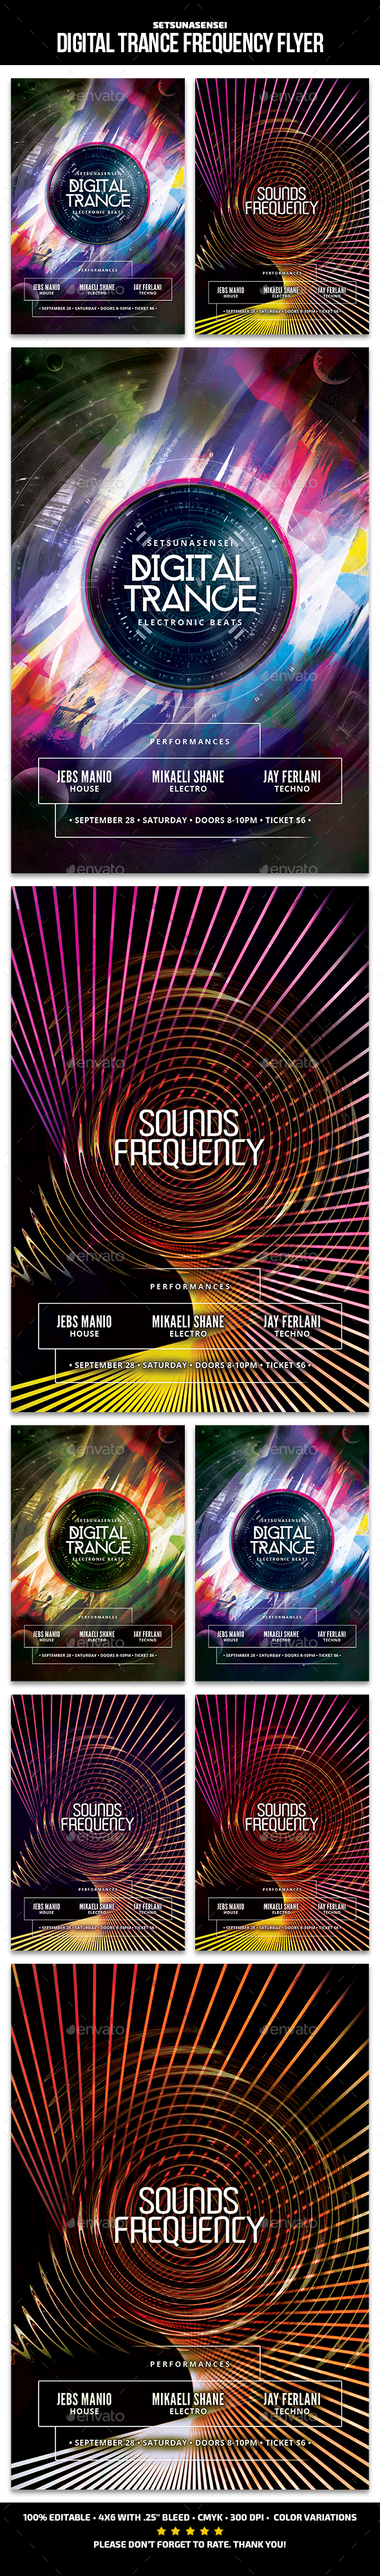 Digital Trance Frequency Flyer - Clubs & Parties Events